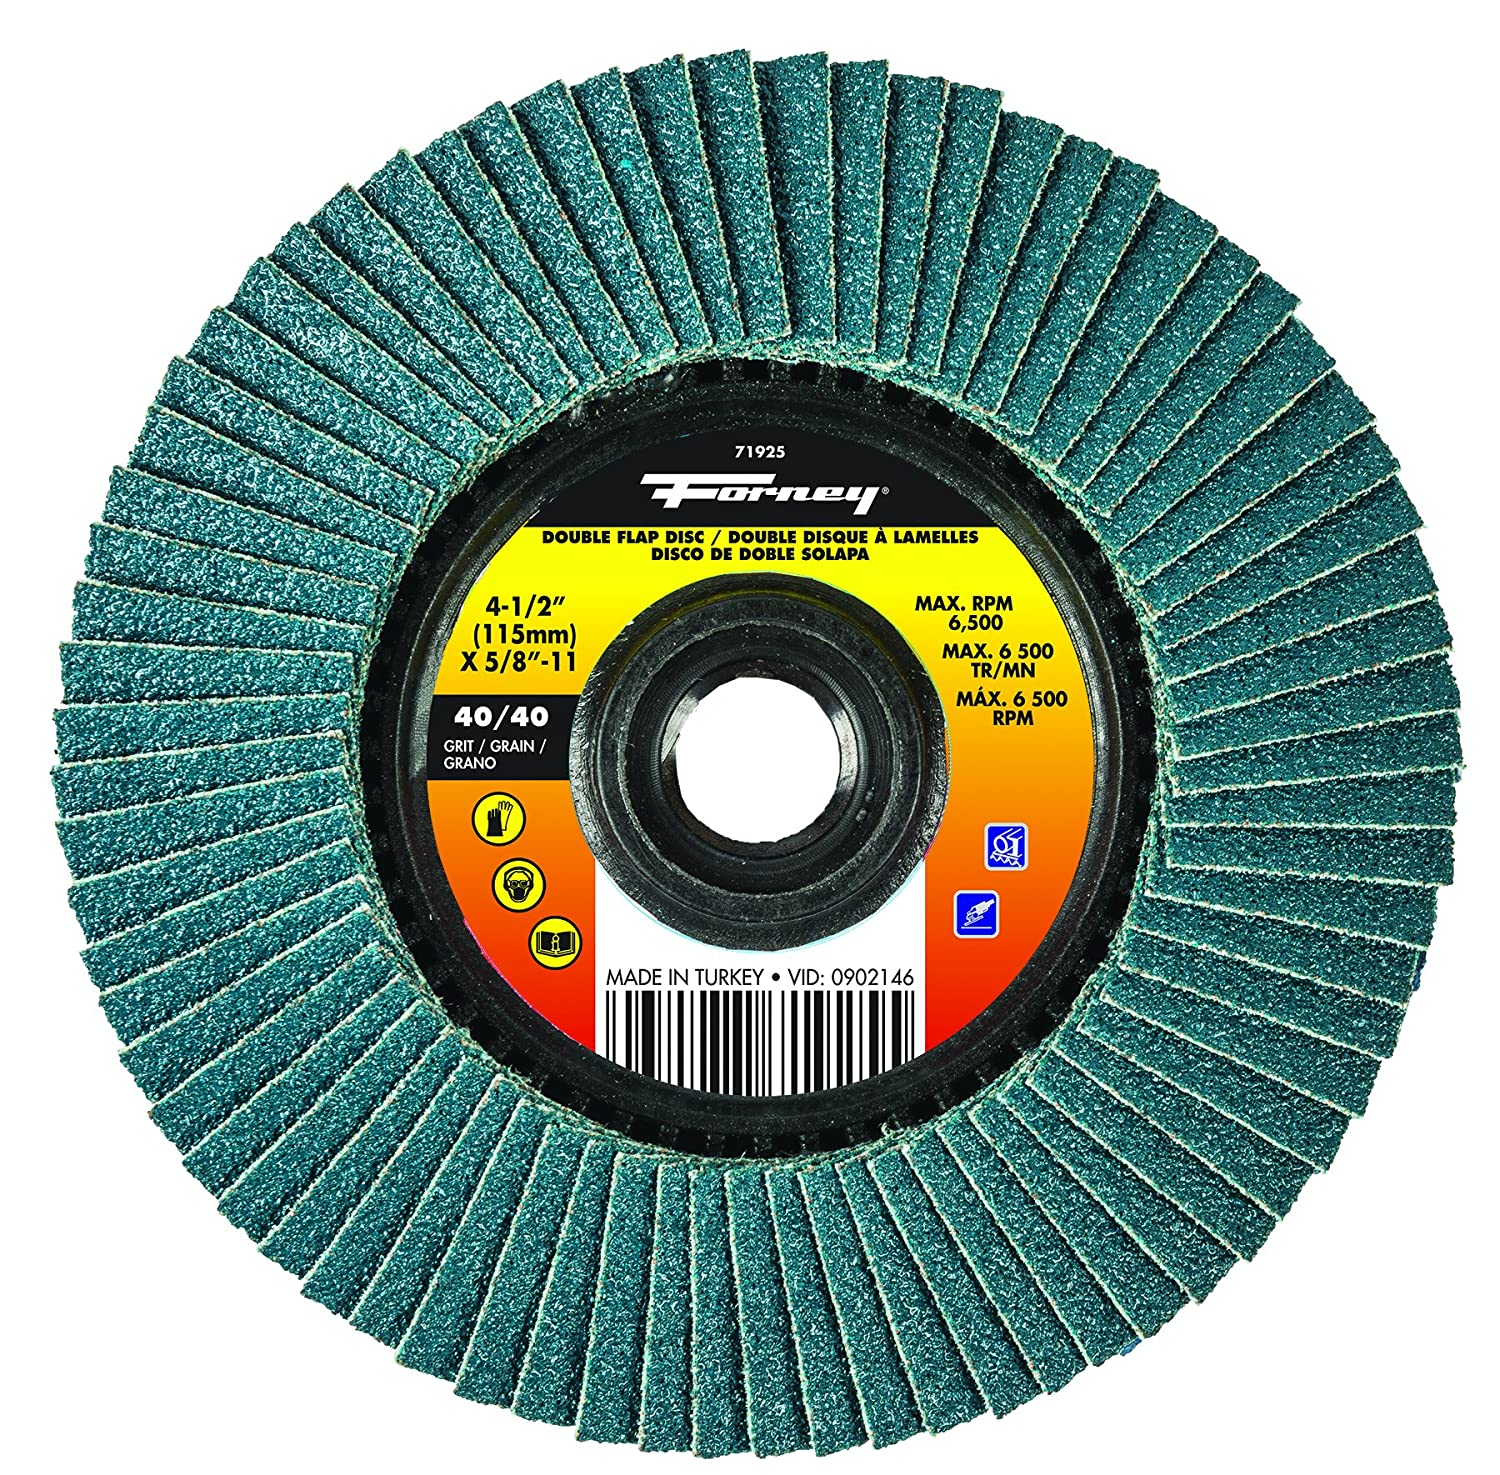 40//Grits Forney Industries Forney 71925 4 1//2 Double-Sided Flap Disc